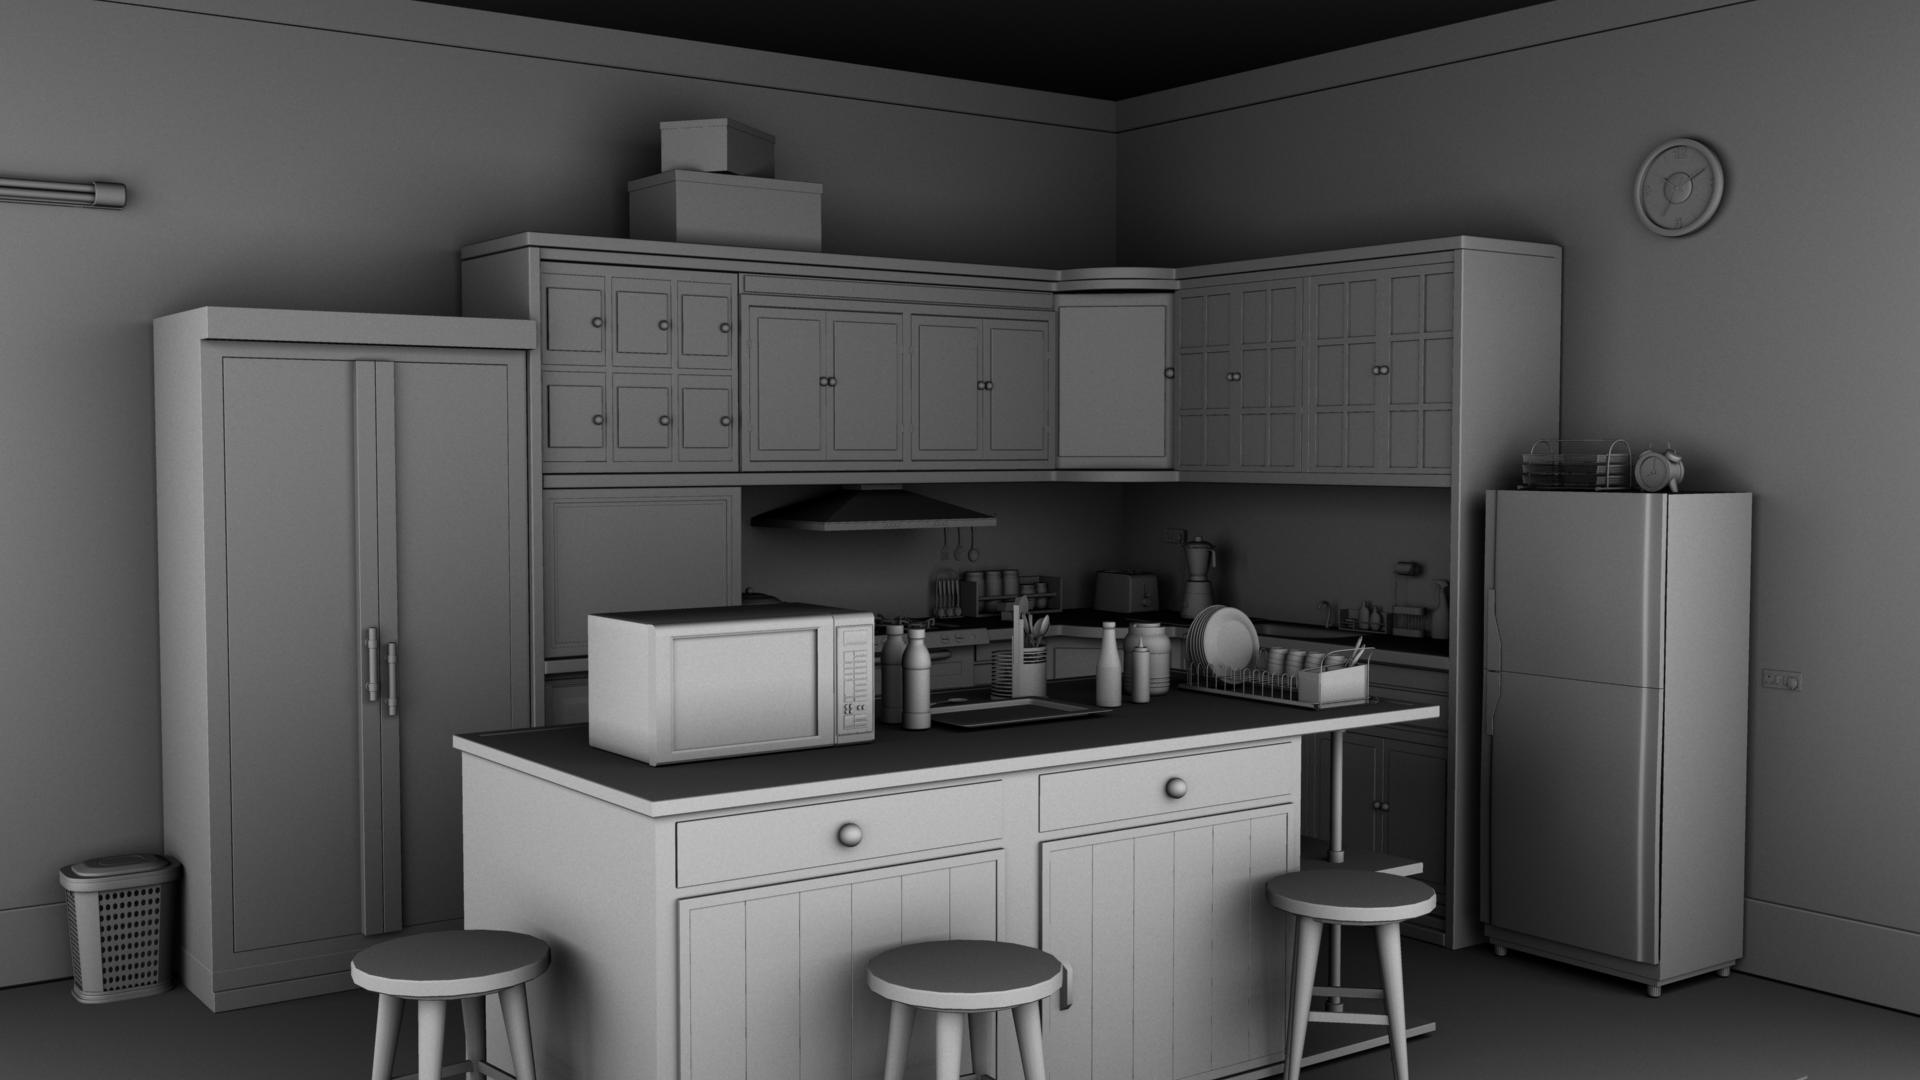 Kitchen 3d Model Buy Kitchen 3d Model Flatpyramid